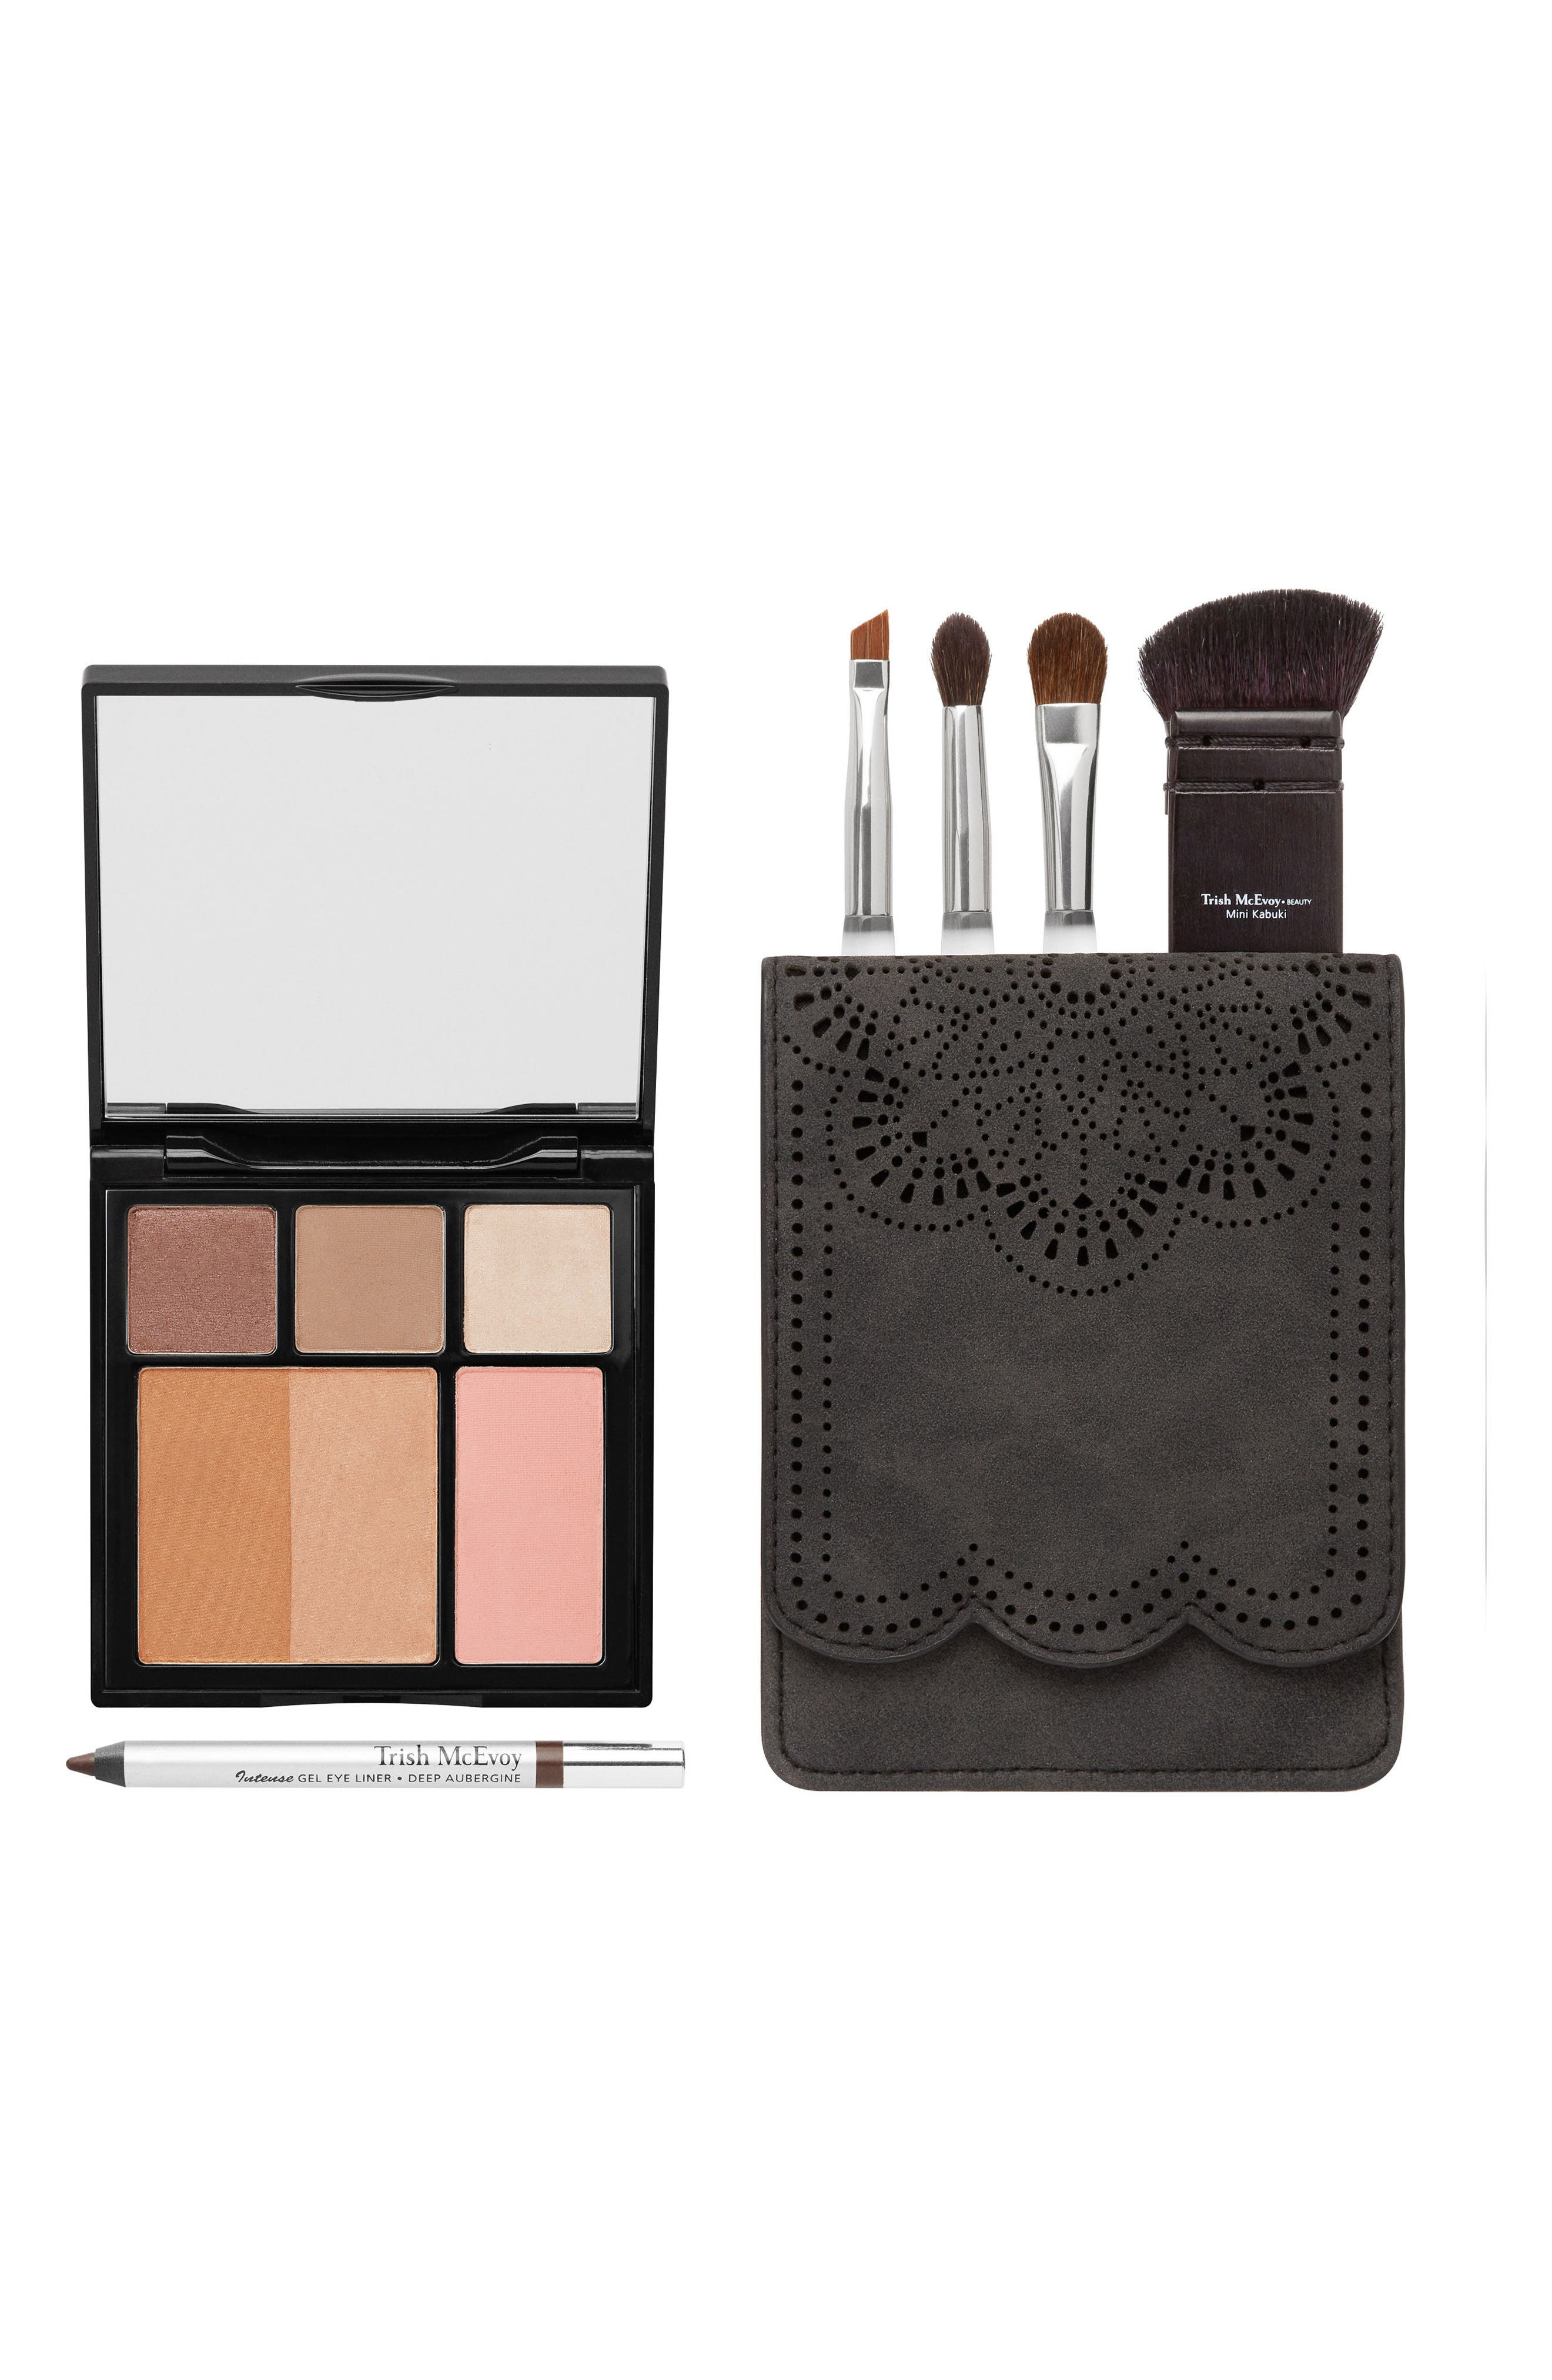 Main Image - Trish McEvoy Confidence to Go Palette (Limited Edition)